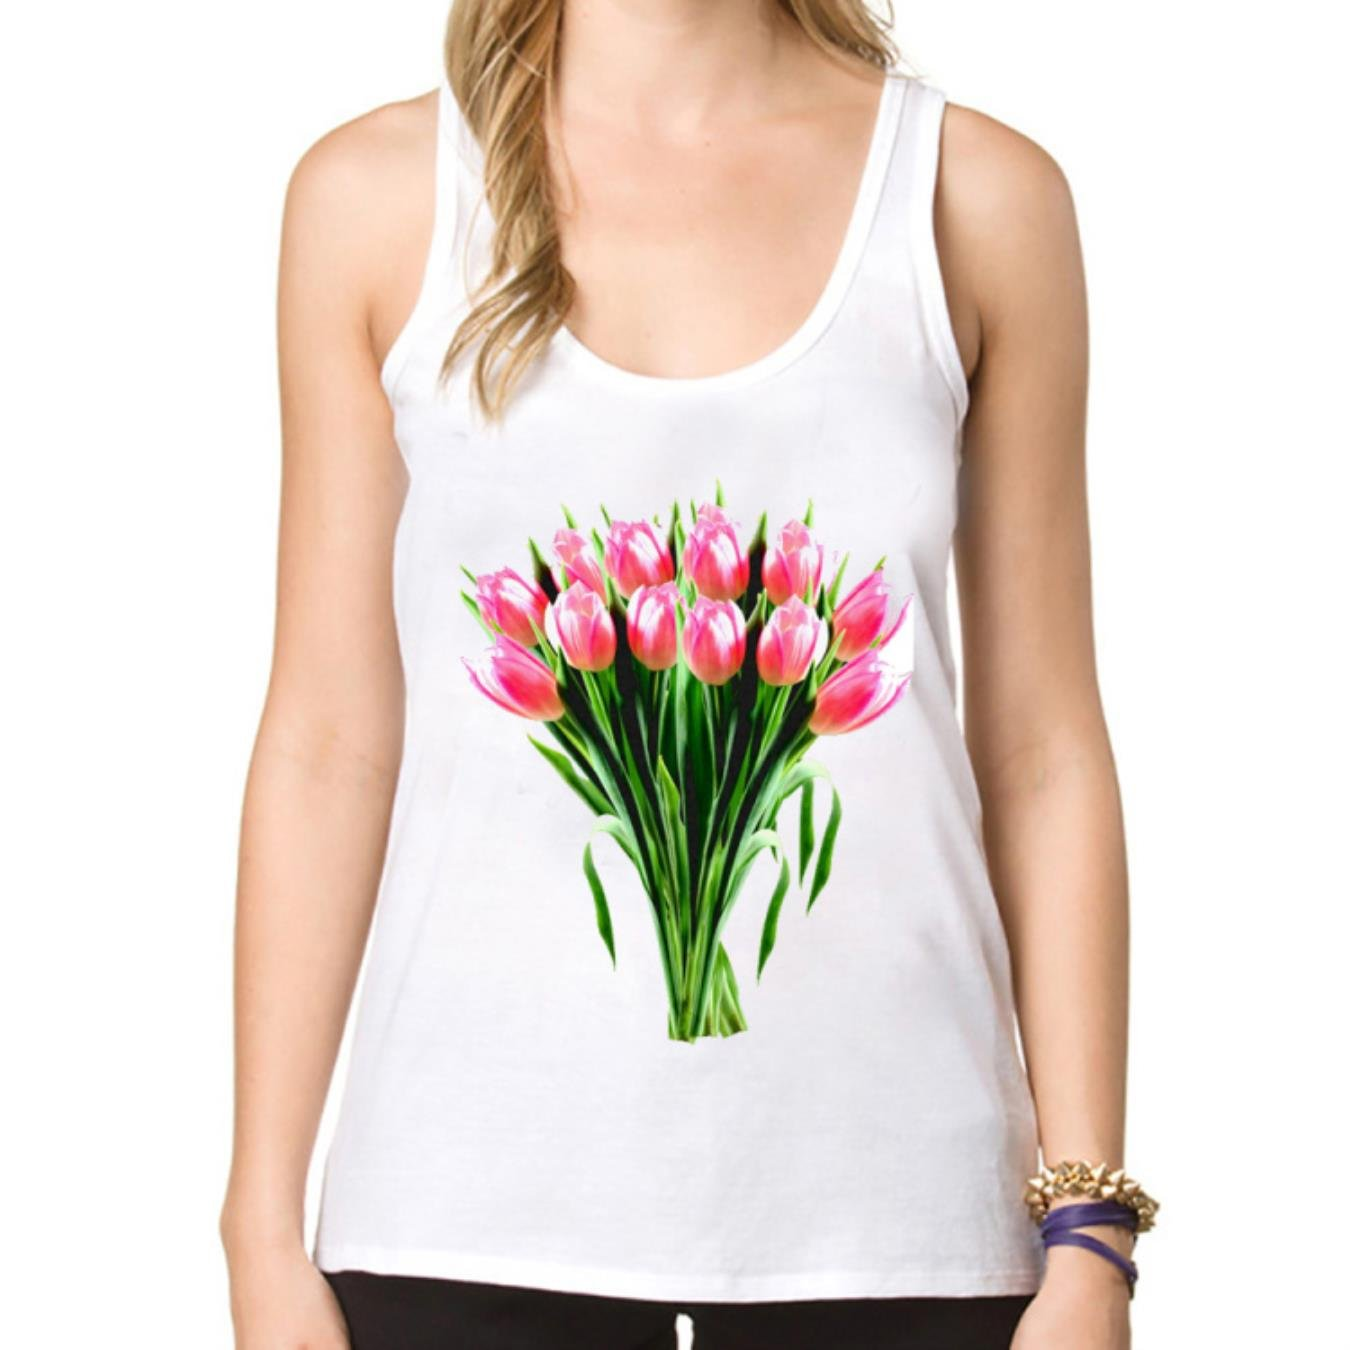 Summer fall fashion women39;s vest Tulips bouquet print tanks fashion female Tops super funny cool sleeveless Tee